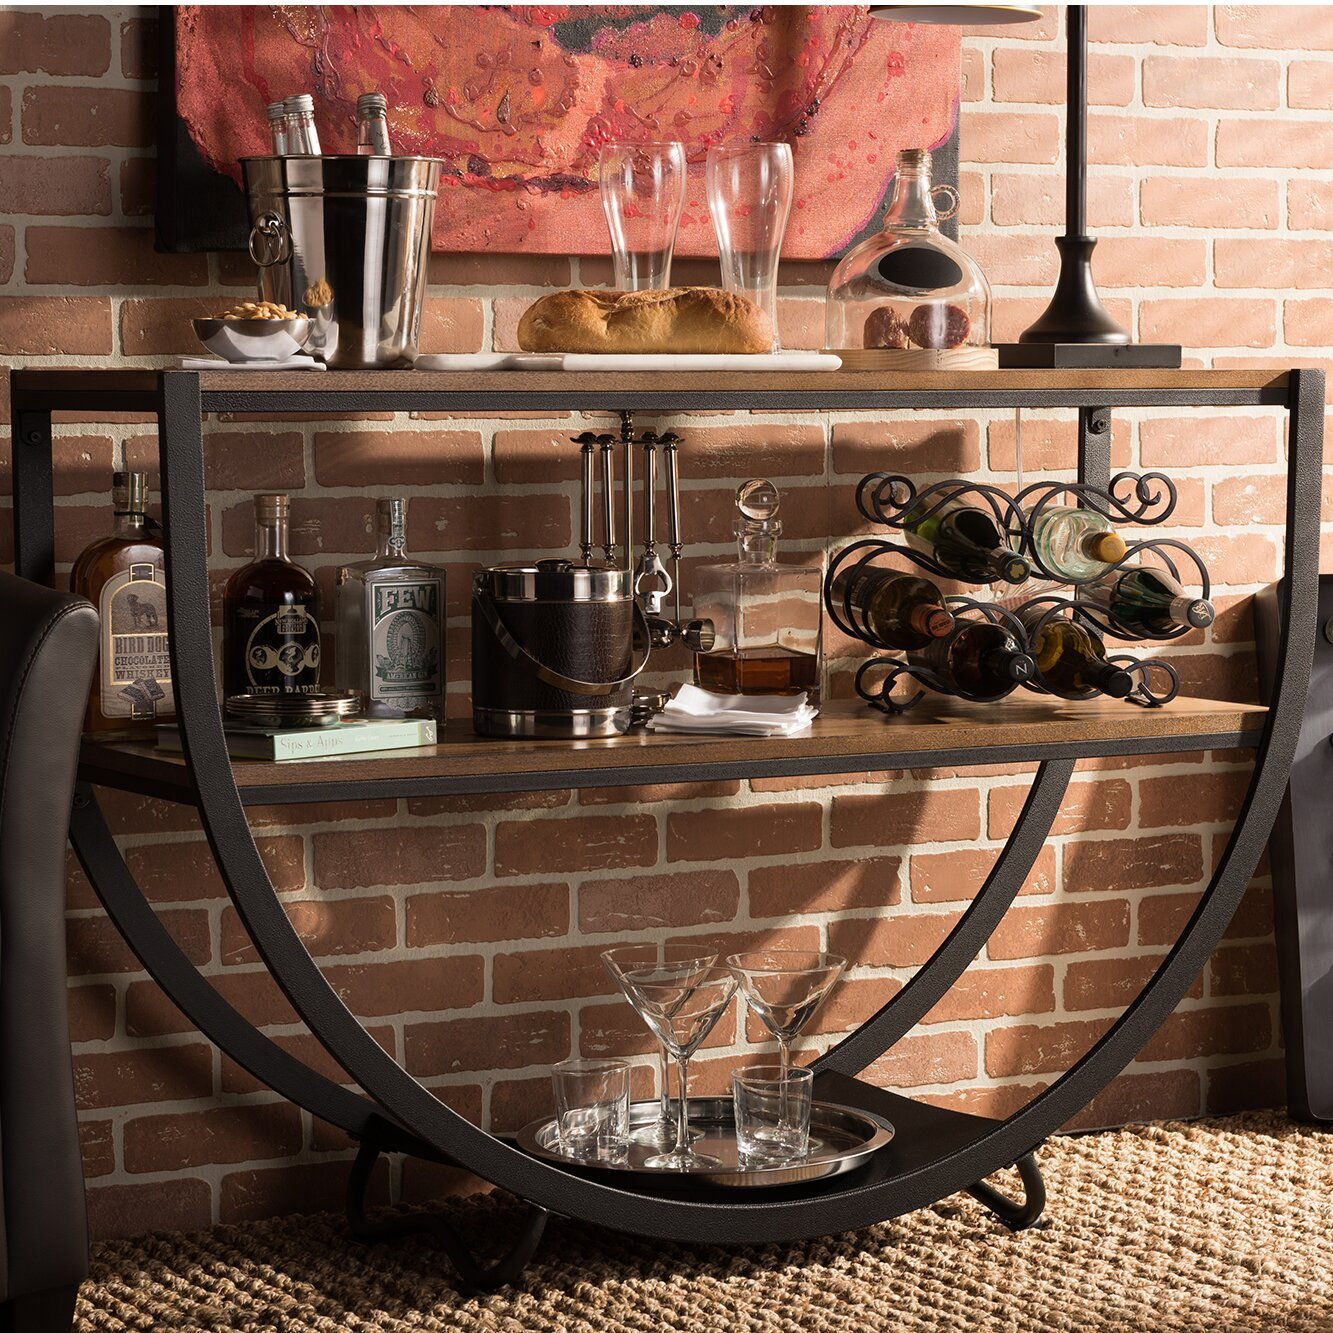 Baxton Studio Brown Industrial Kitchen Cart At Lowes Com: Wholesale Interiors Baxton Studio Blakes Console Table